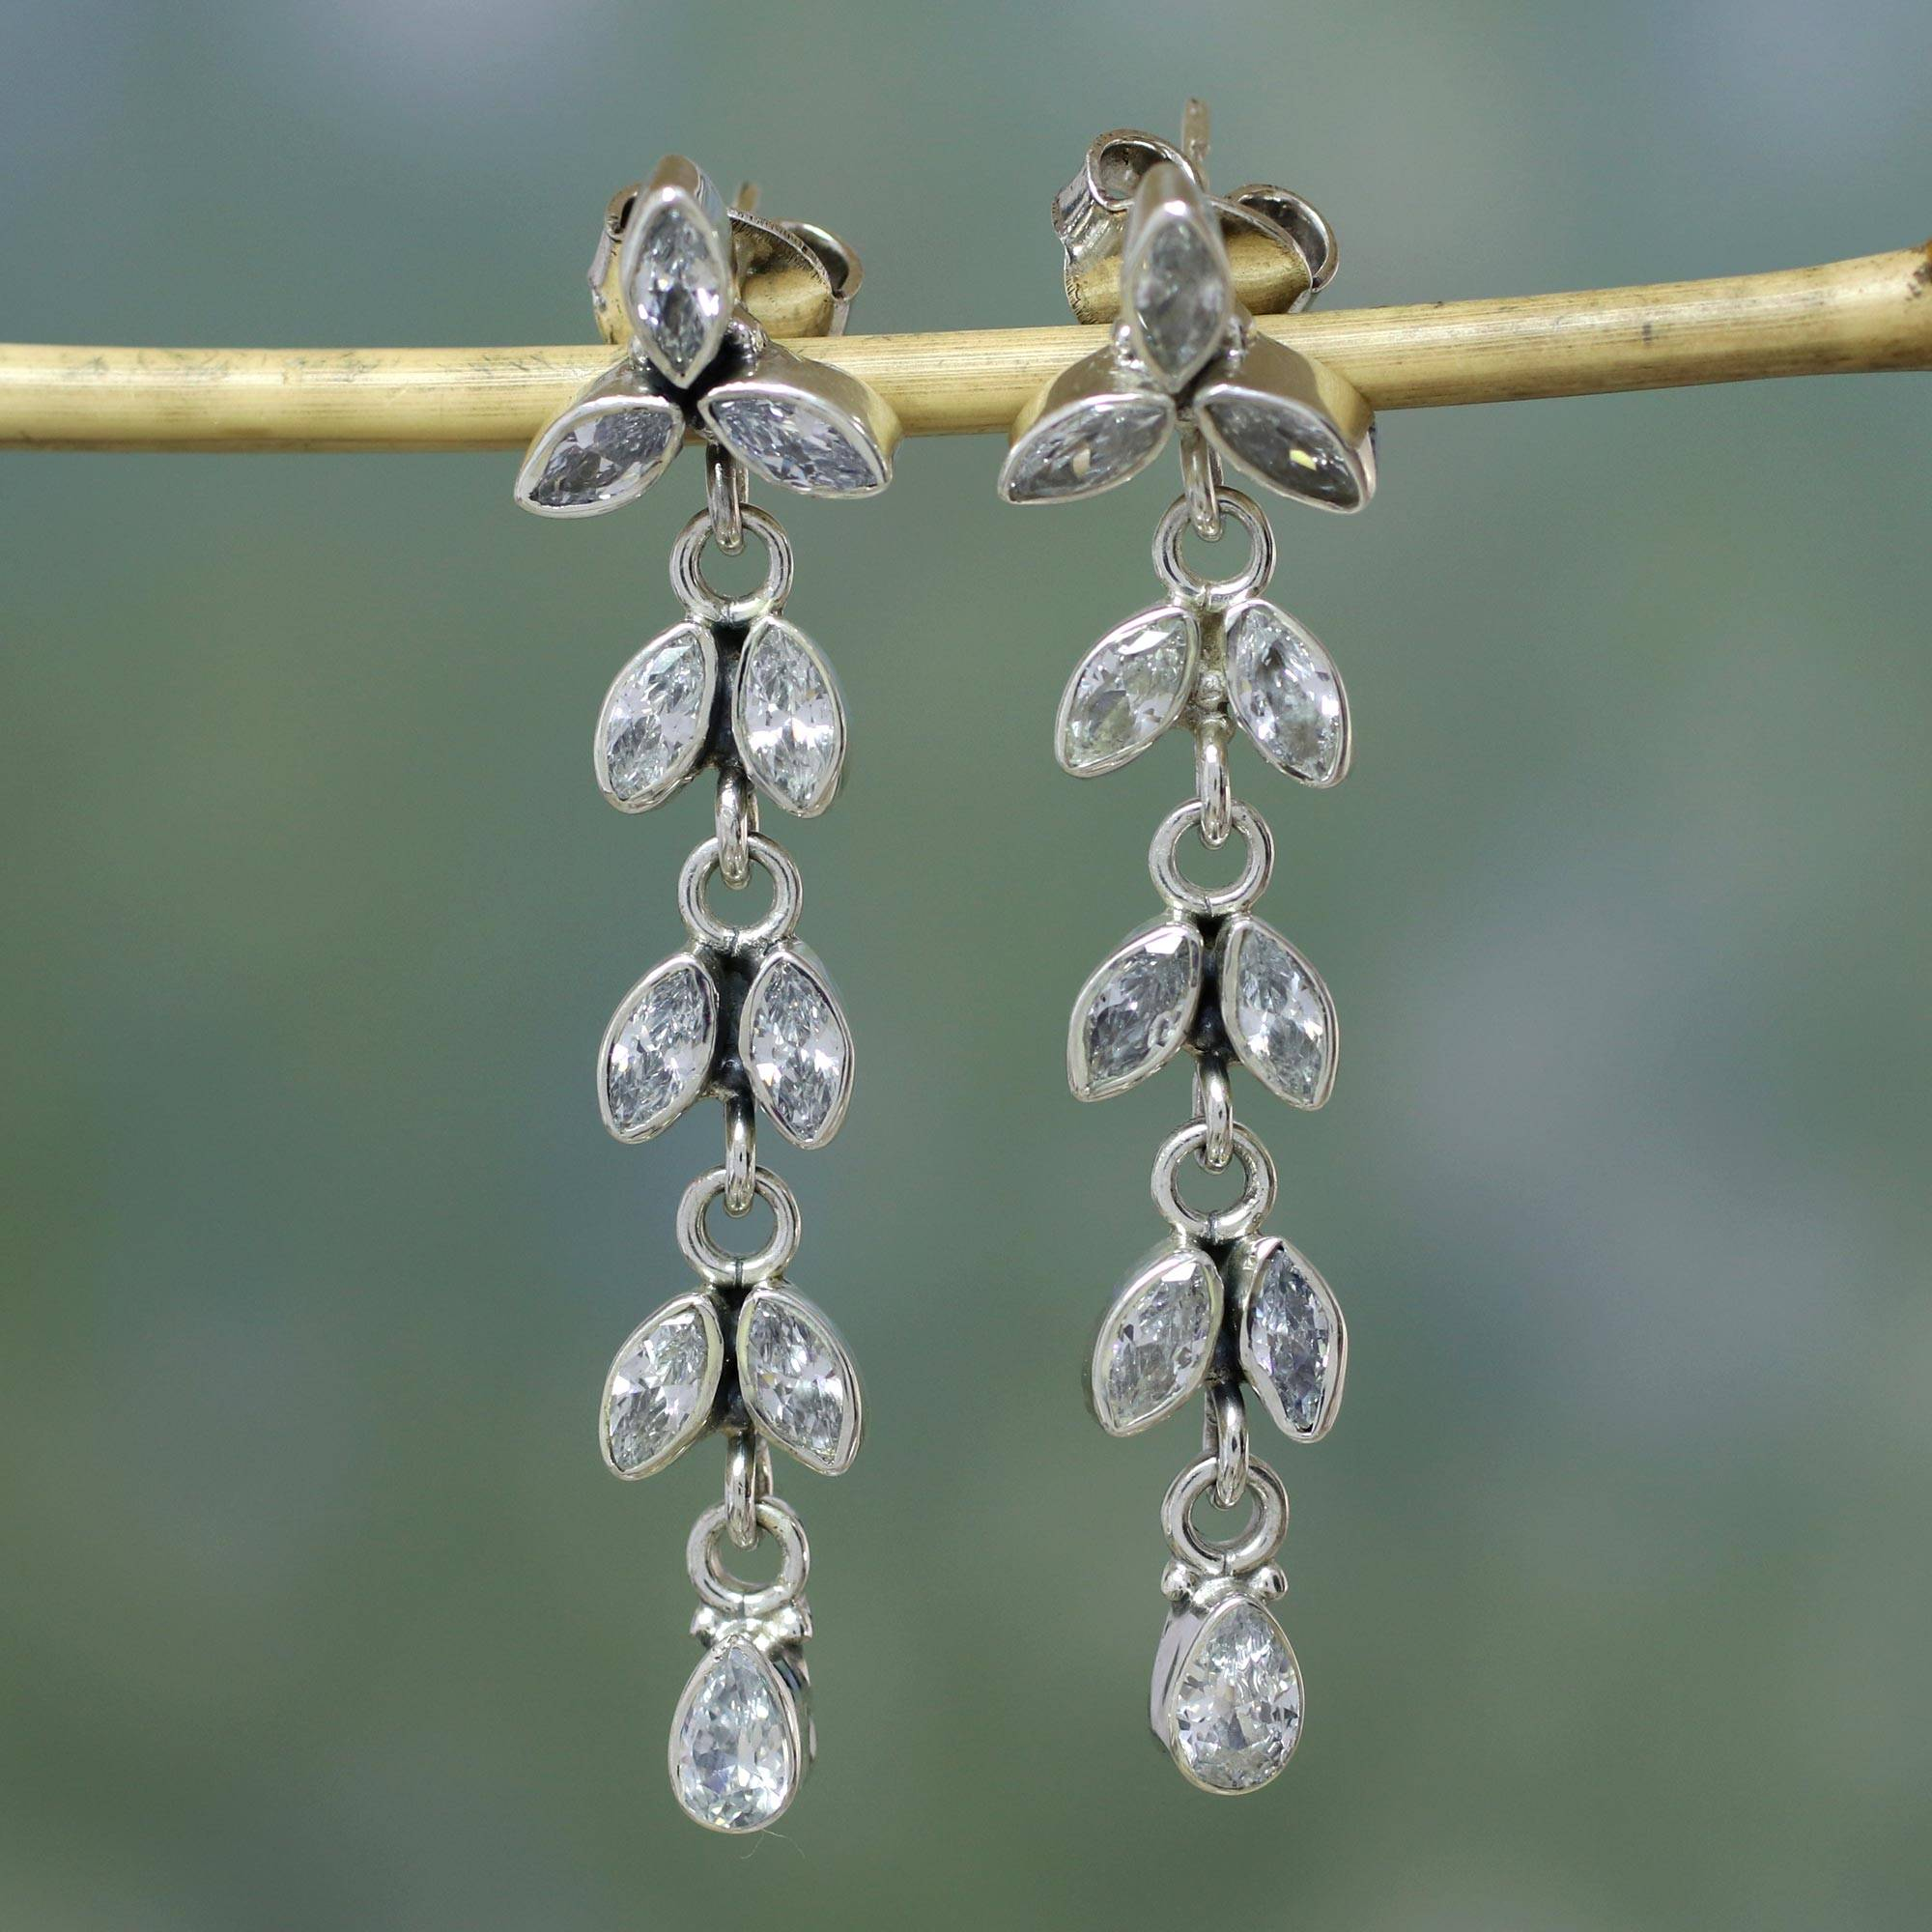 White Daffodils Sterling Silver and Quartz Earrings from Bridal Jewelry what are birthstones